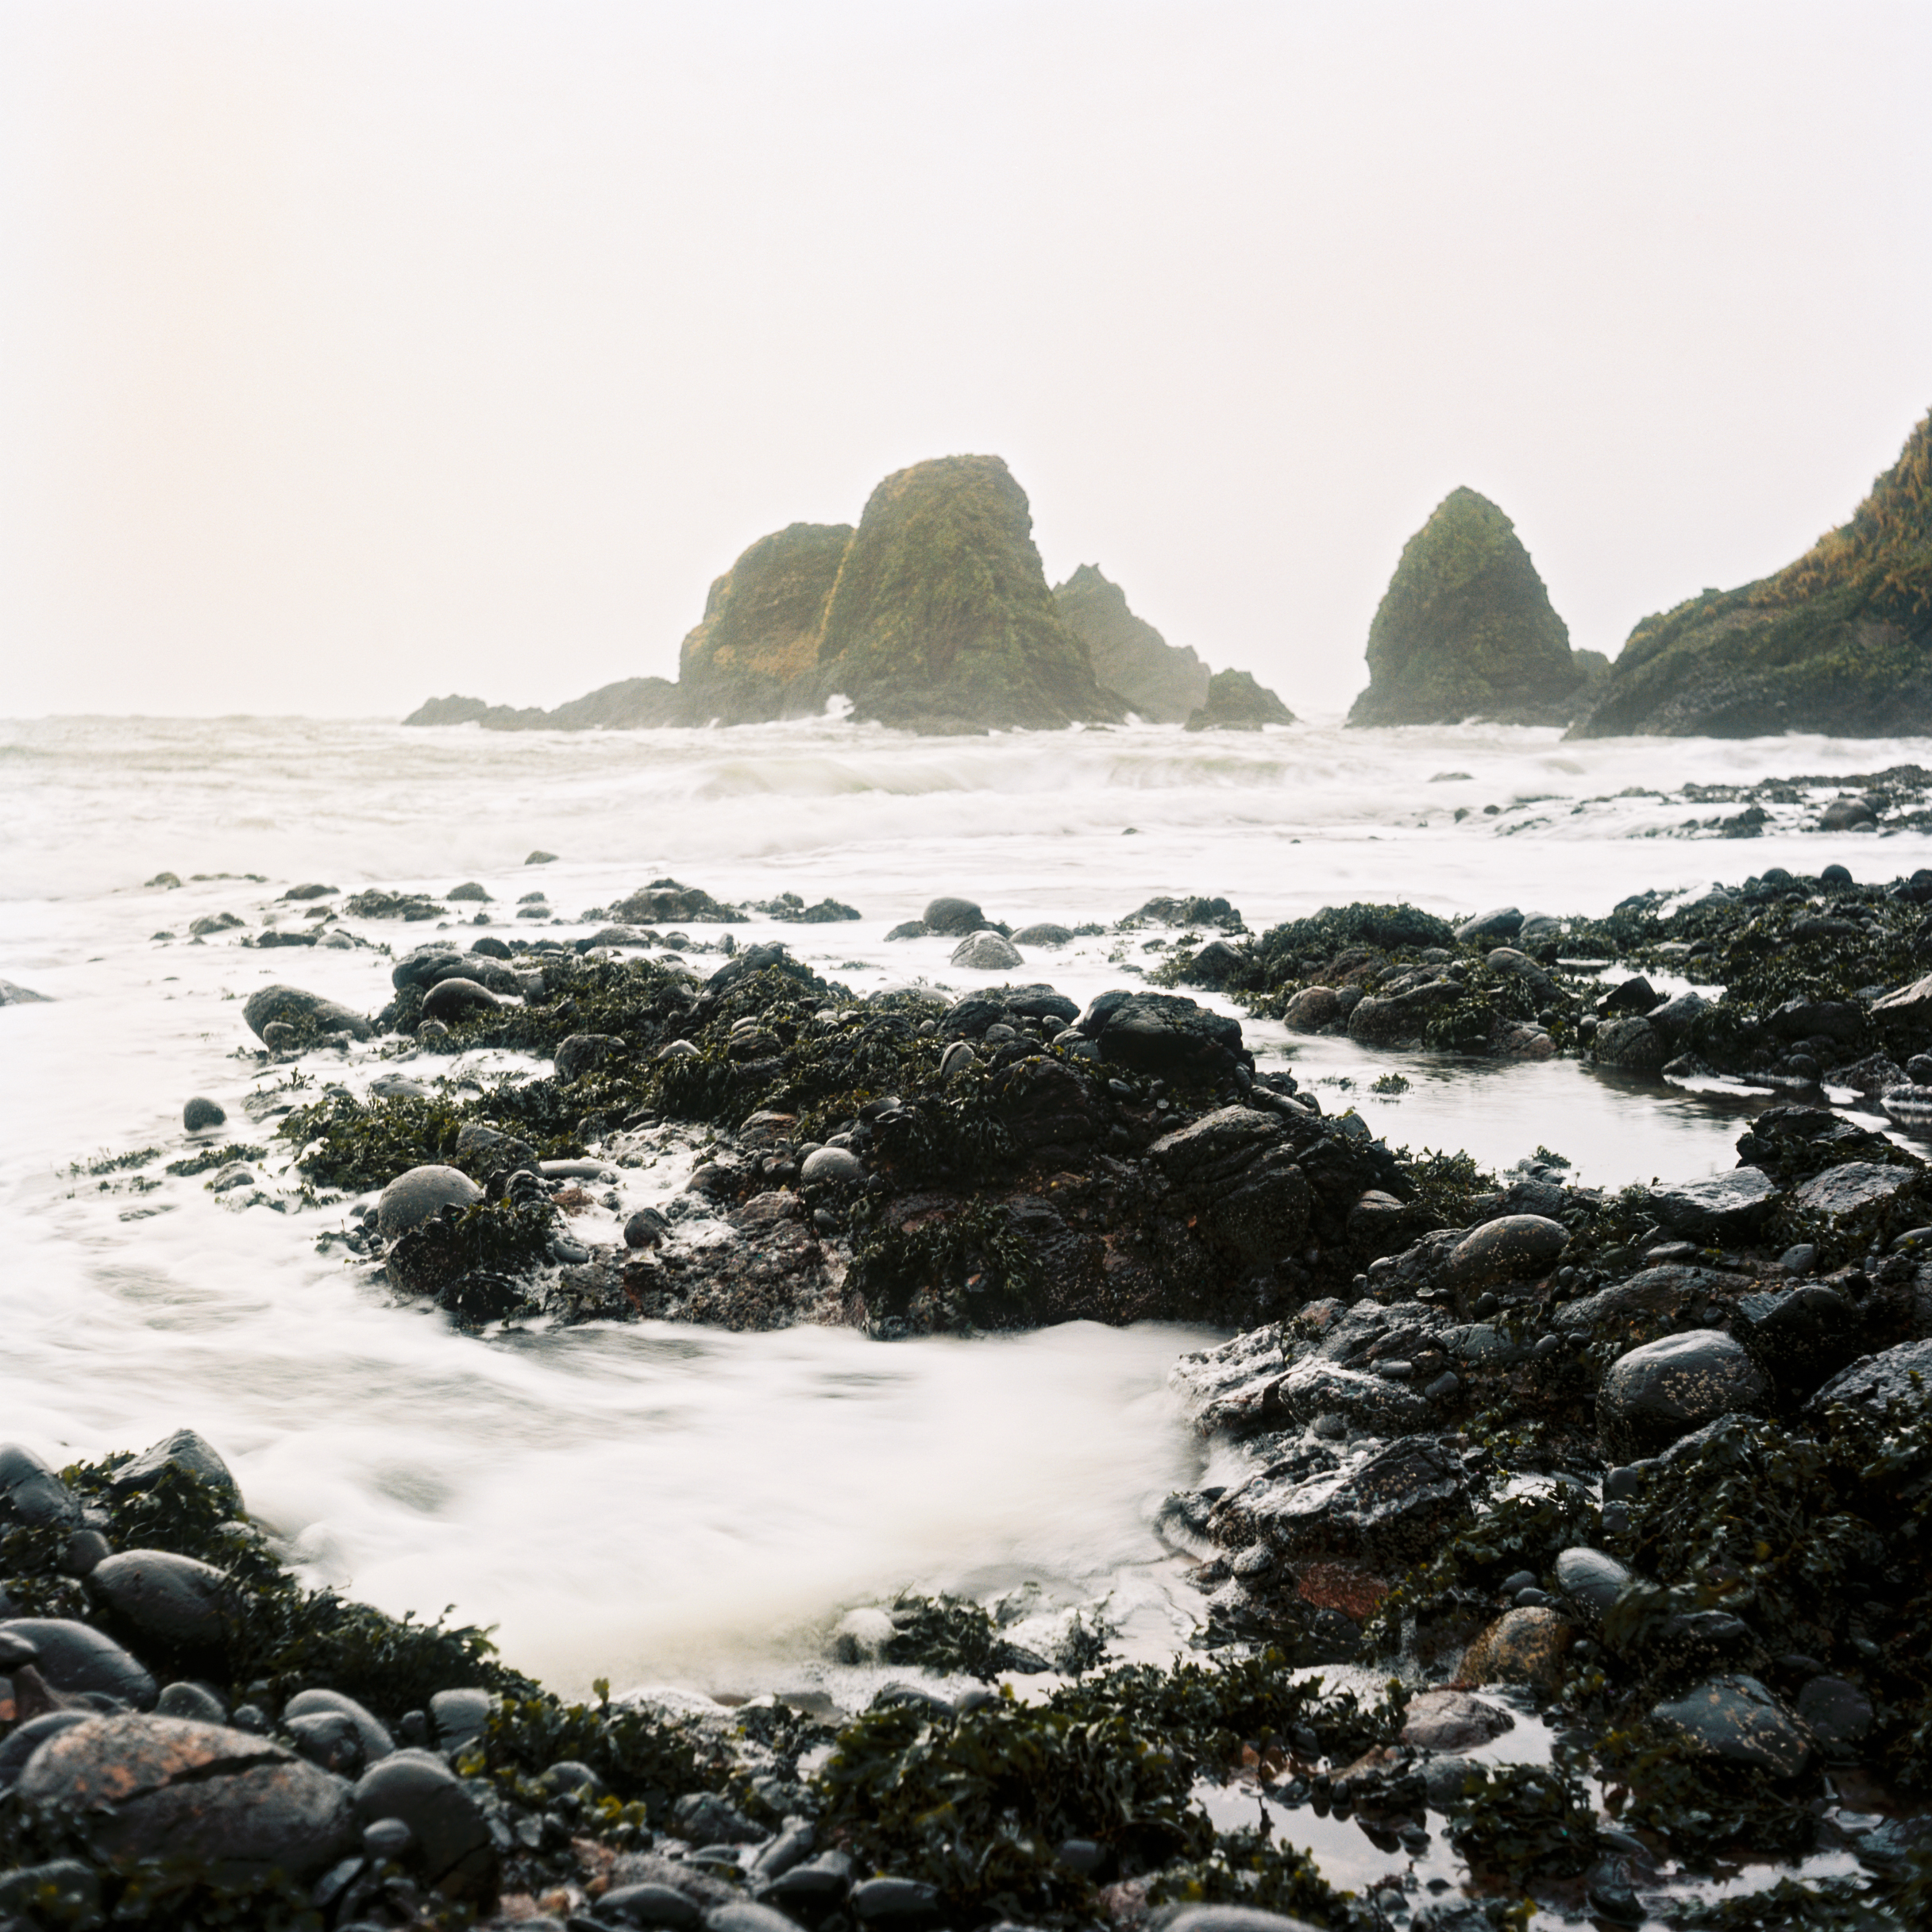 Rocks and waves - Kodak Ektar 100